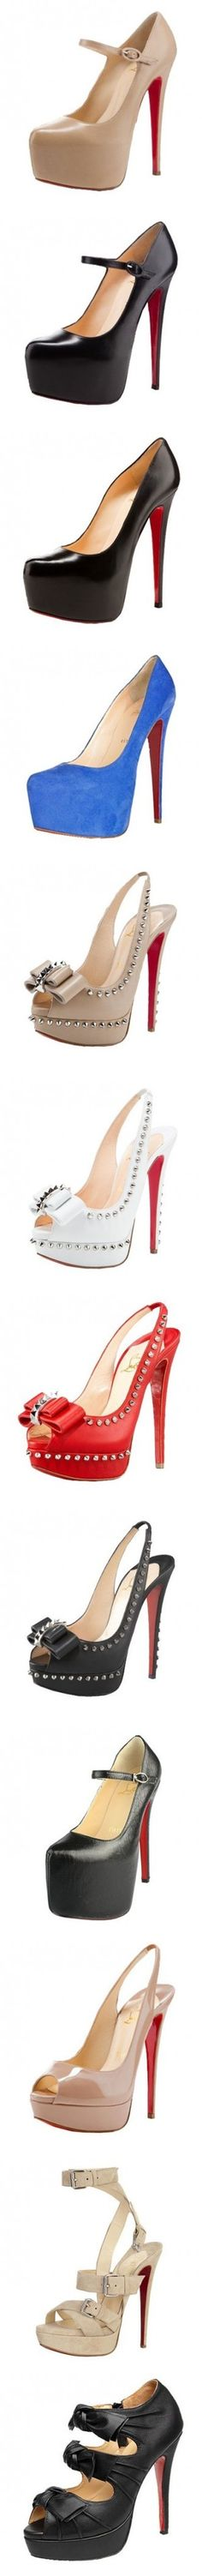 """""""louis vuitton red bottom shoes as Christmas gift"""" by sevenpang ❤ liked on Polyvore"""